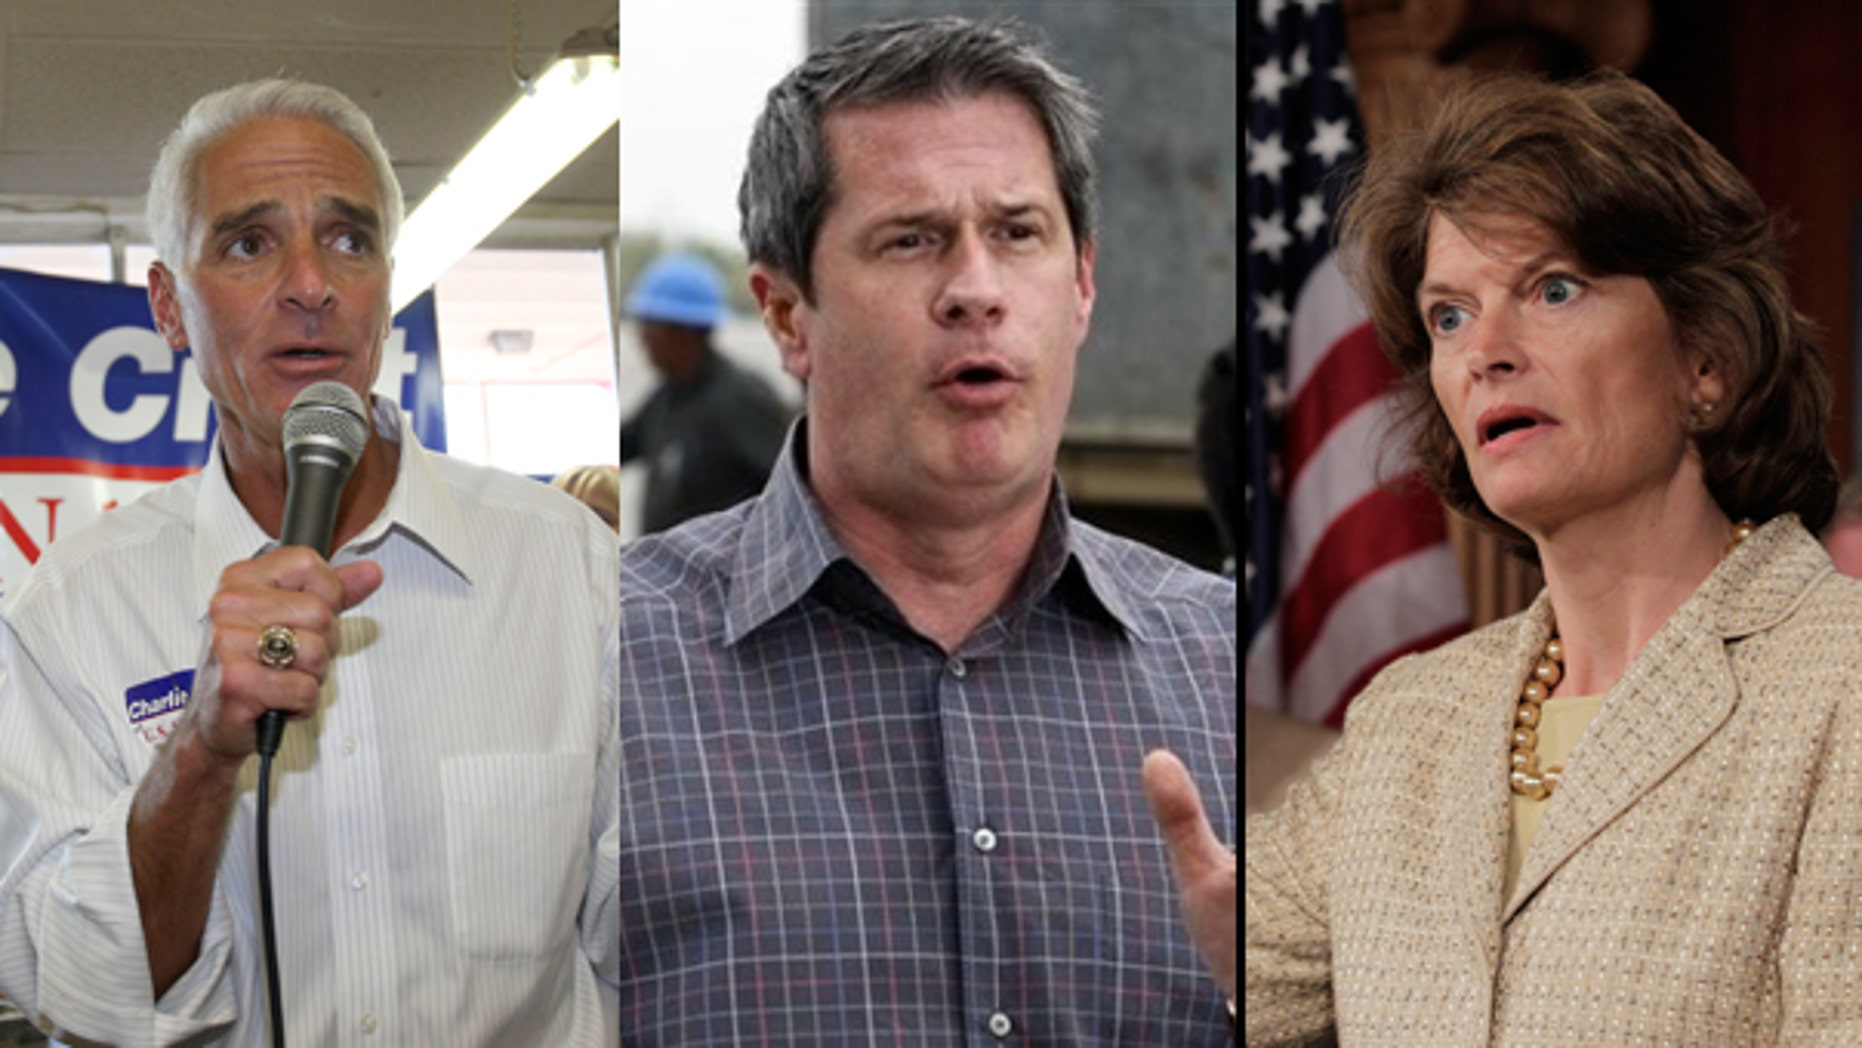 Florida Gov. Charlie Crist (l), Sen. David Vitter (c), and Sen. Lisa Murkowski, (r), are among the politicians being targeted for their position on offshore drilling. (AP)